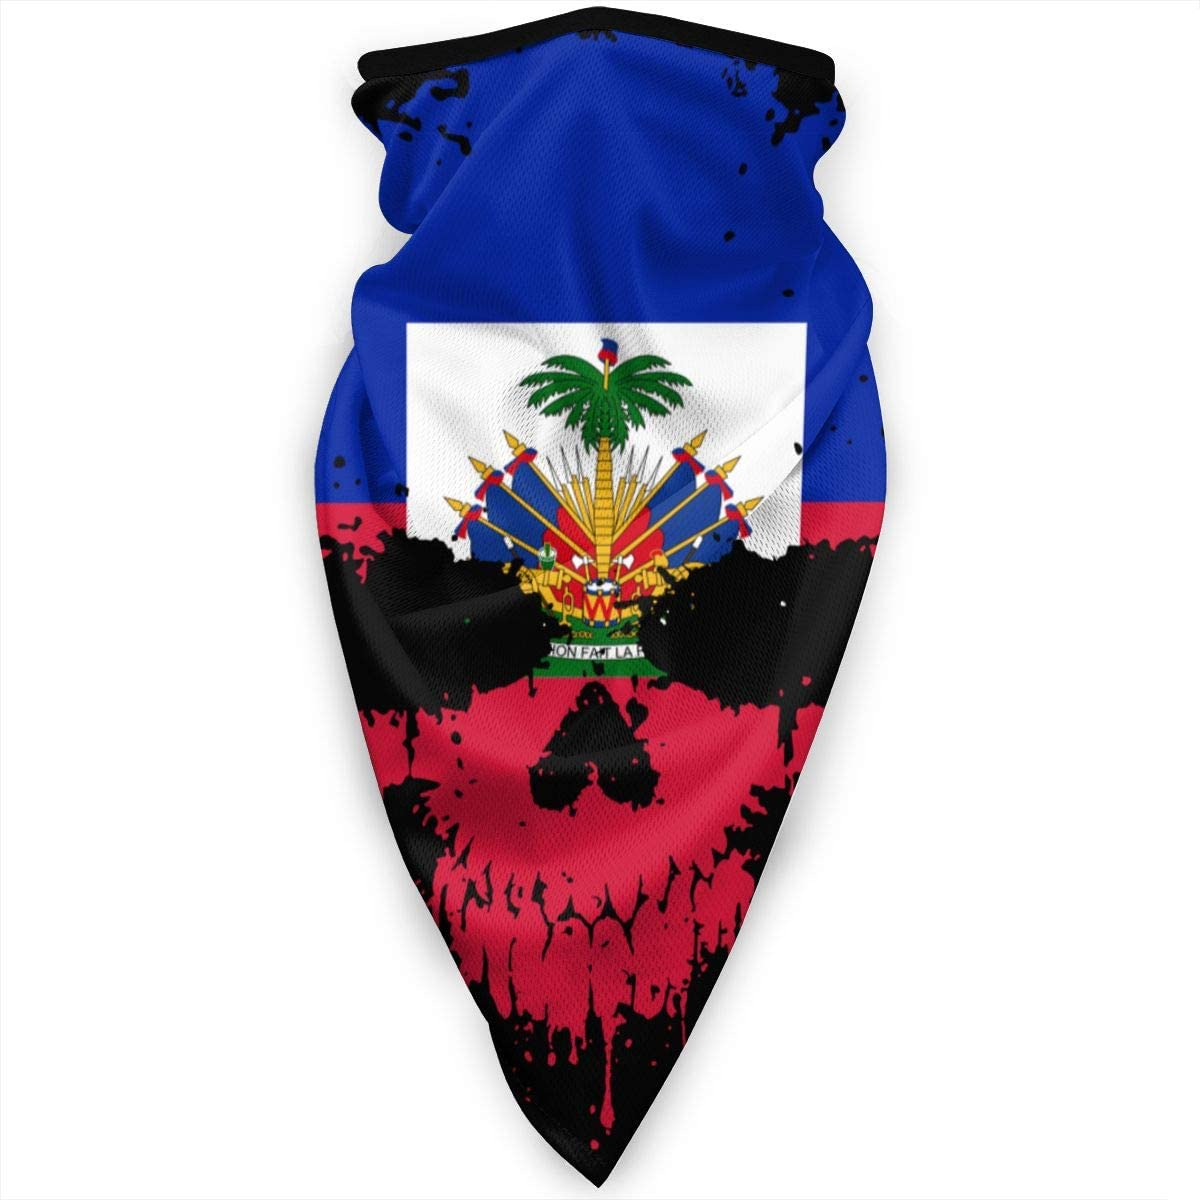 B07YDWBNJJ Haitian Haiti Skull Flag Face Mask Neck Gaiters Bandana Scarf Balaclava Multifunctional Headwear for Outdoor Sports Black 61UwPK8bq2L